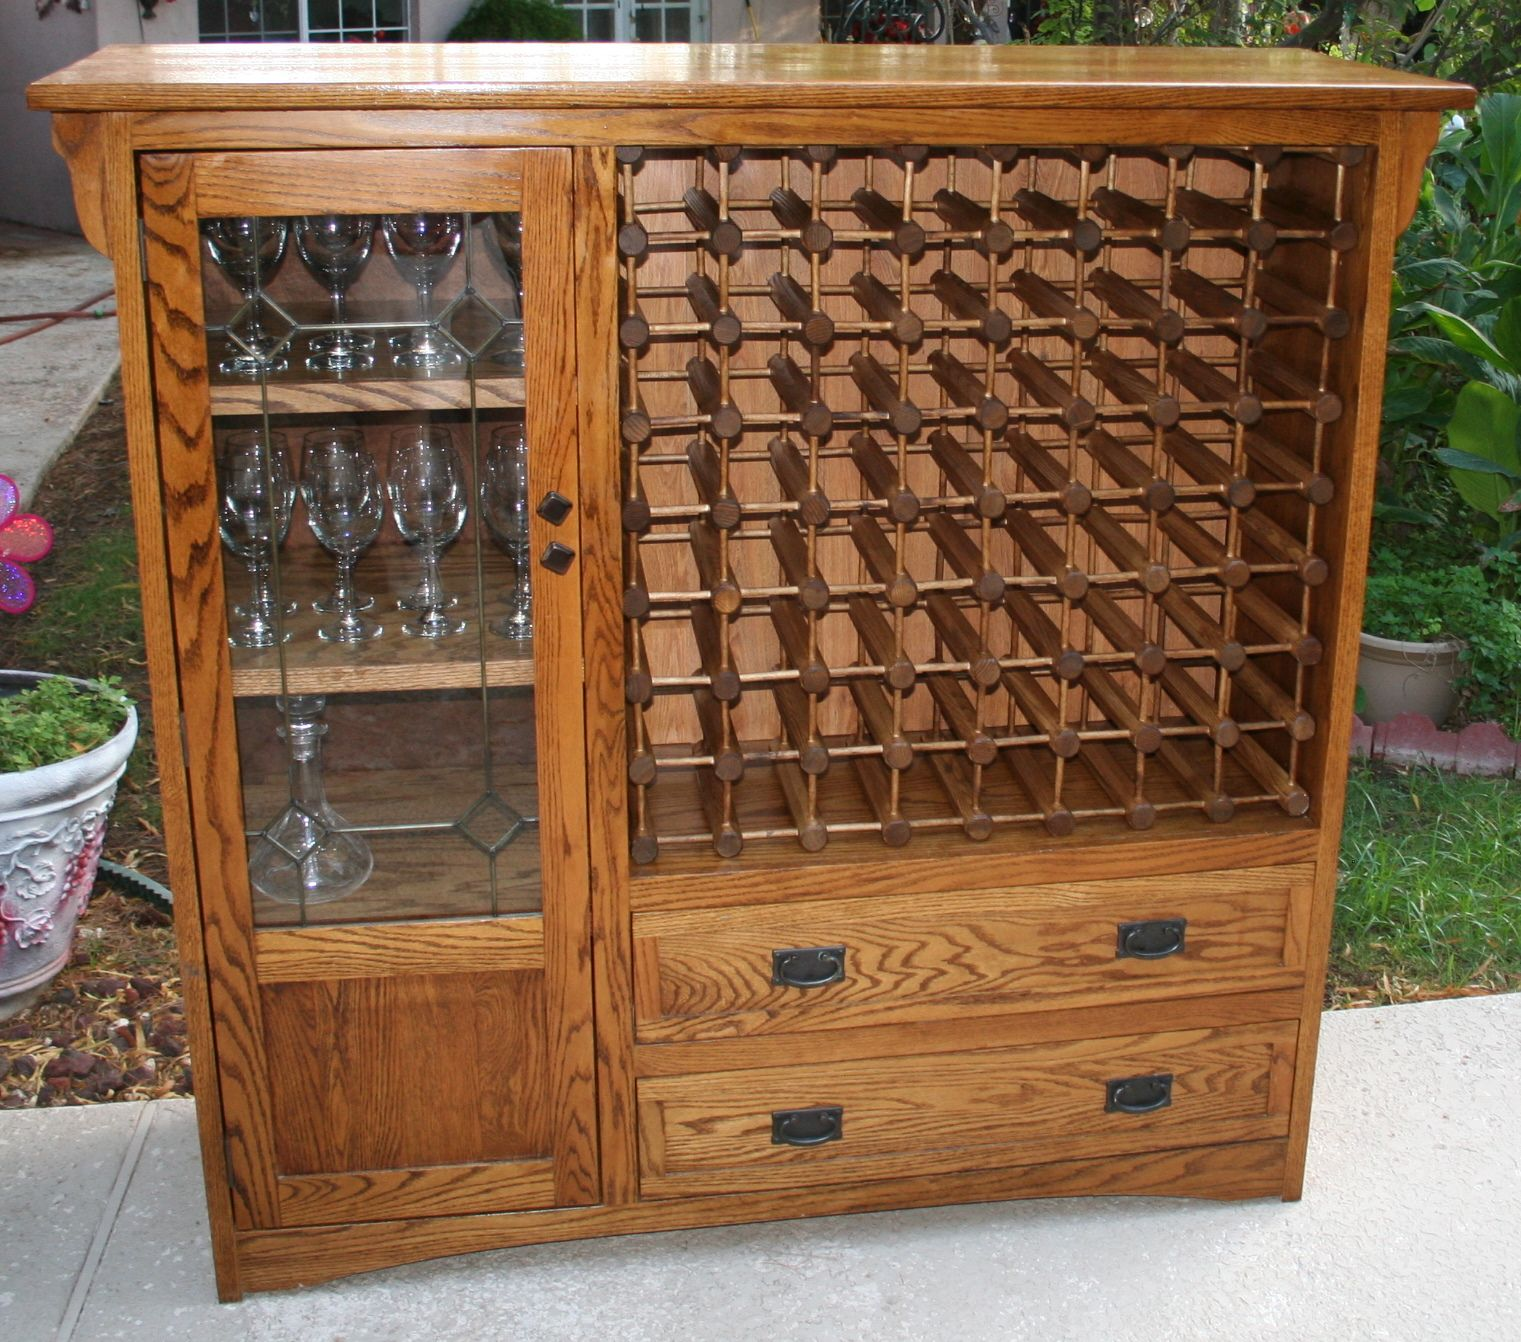 I converted an old TV cabinet into a wine rack. It'll hold 64 ...